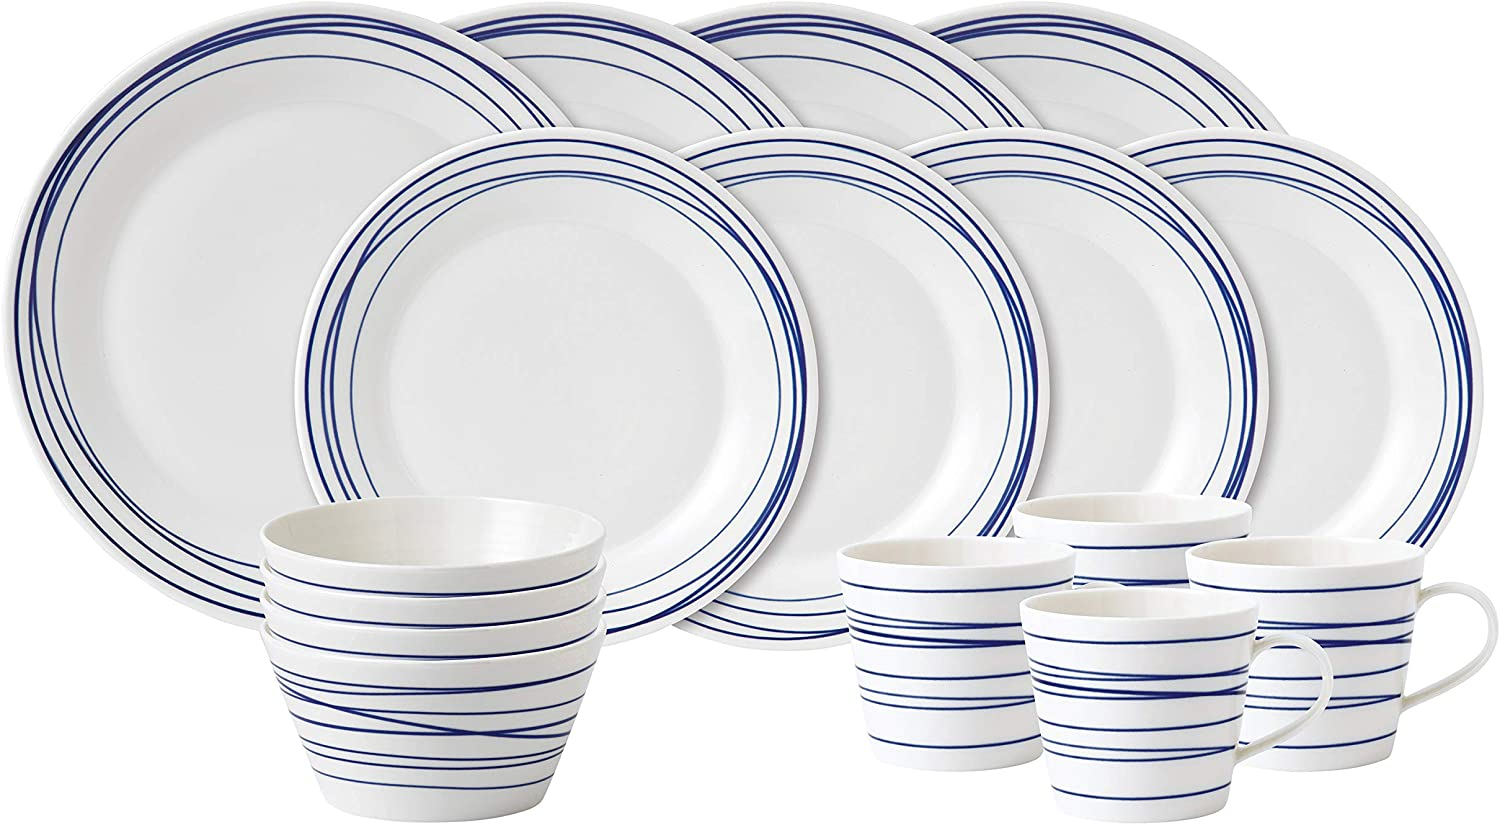 Royal Seattle Mall Doulton Pacific Max 68% OFF Lines Dinner 16 Piece Dinnerware Blue Set